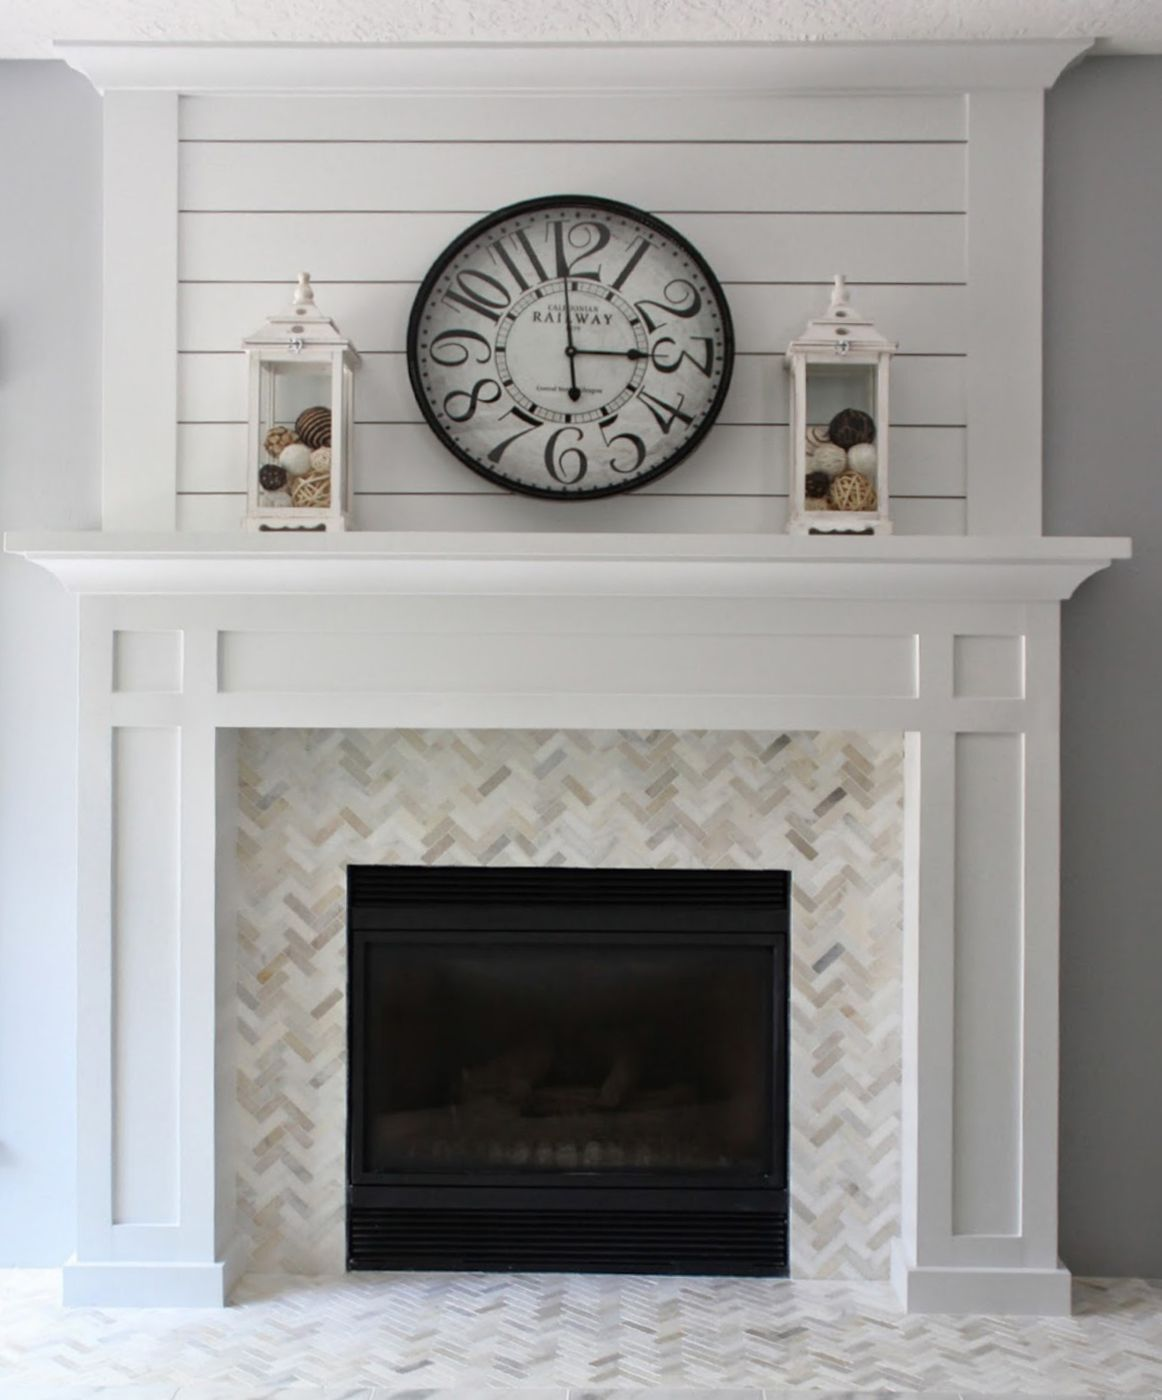 15 Best Fireplace Ideas Home fireplace, Brick fireplace